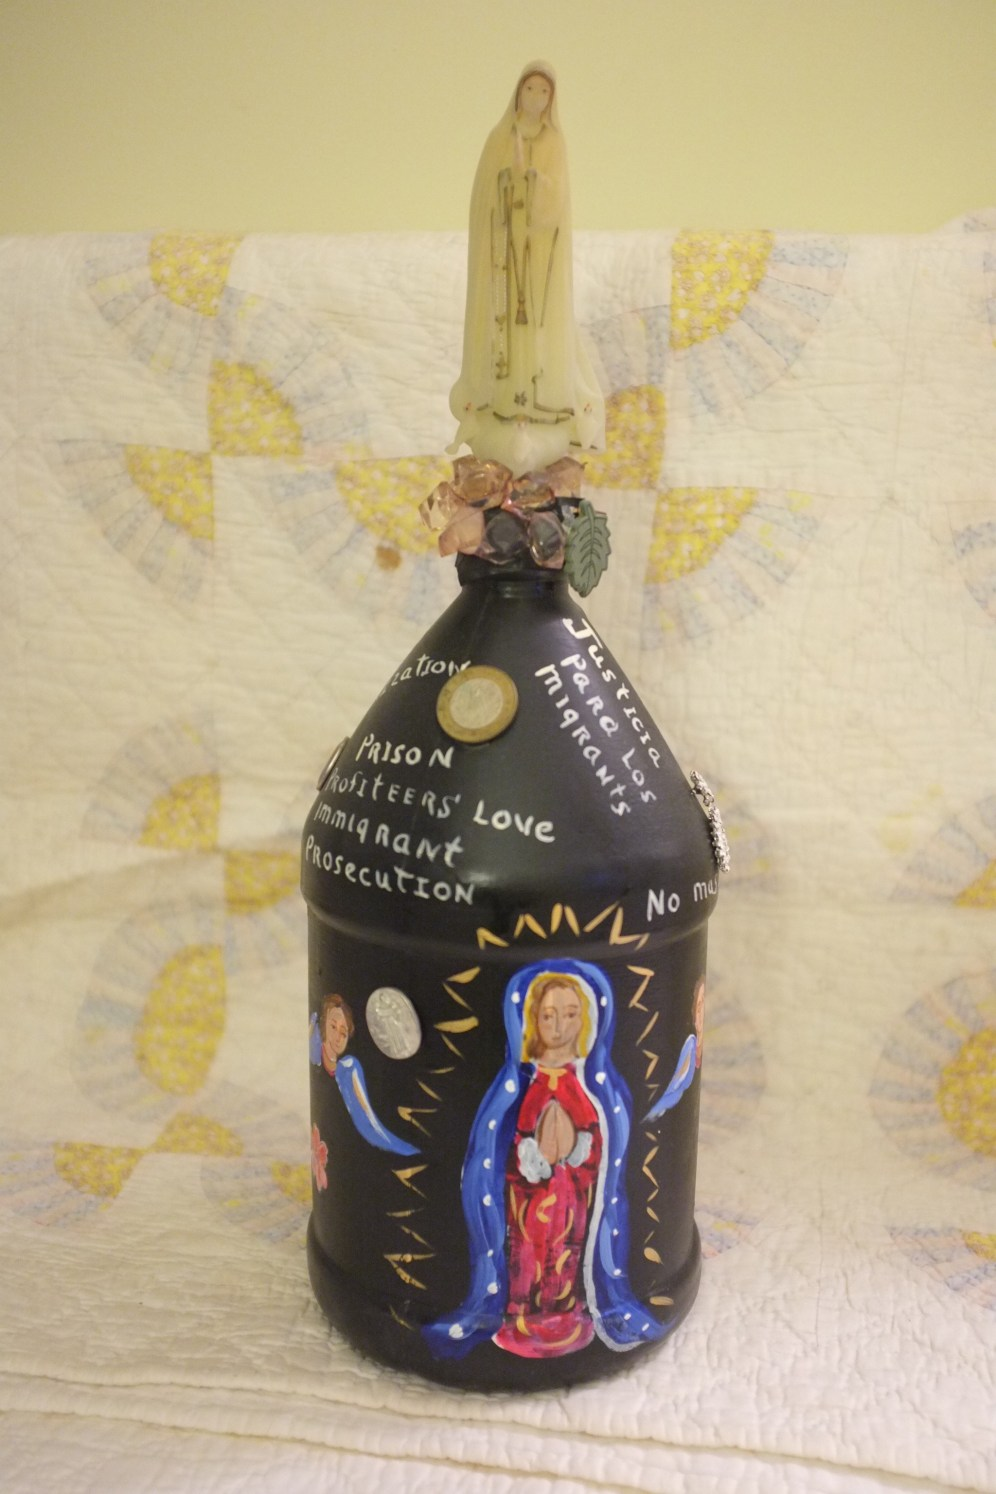 Repurposed water bottle created as memorial tribute to immigrants lost in the desert crossing to the border. From a series produced by the aid group Los Samaritanos. Items attached to the bottle include found objects from the trail and others, including an earring, Mexican currency, a plastic calaveras, milagros, statements of protest, a painted image of OL of Guadalupe. Surmounted by a small glow-in-the-dark plastic figure of the of the Blessed Mother. Gift from artist Juanito Jiménez, New Mexico, 2014.